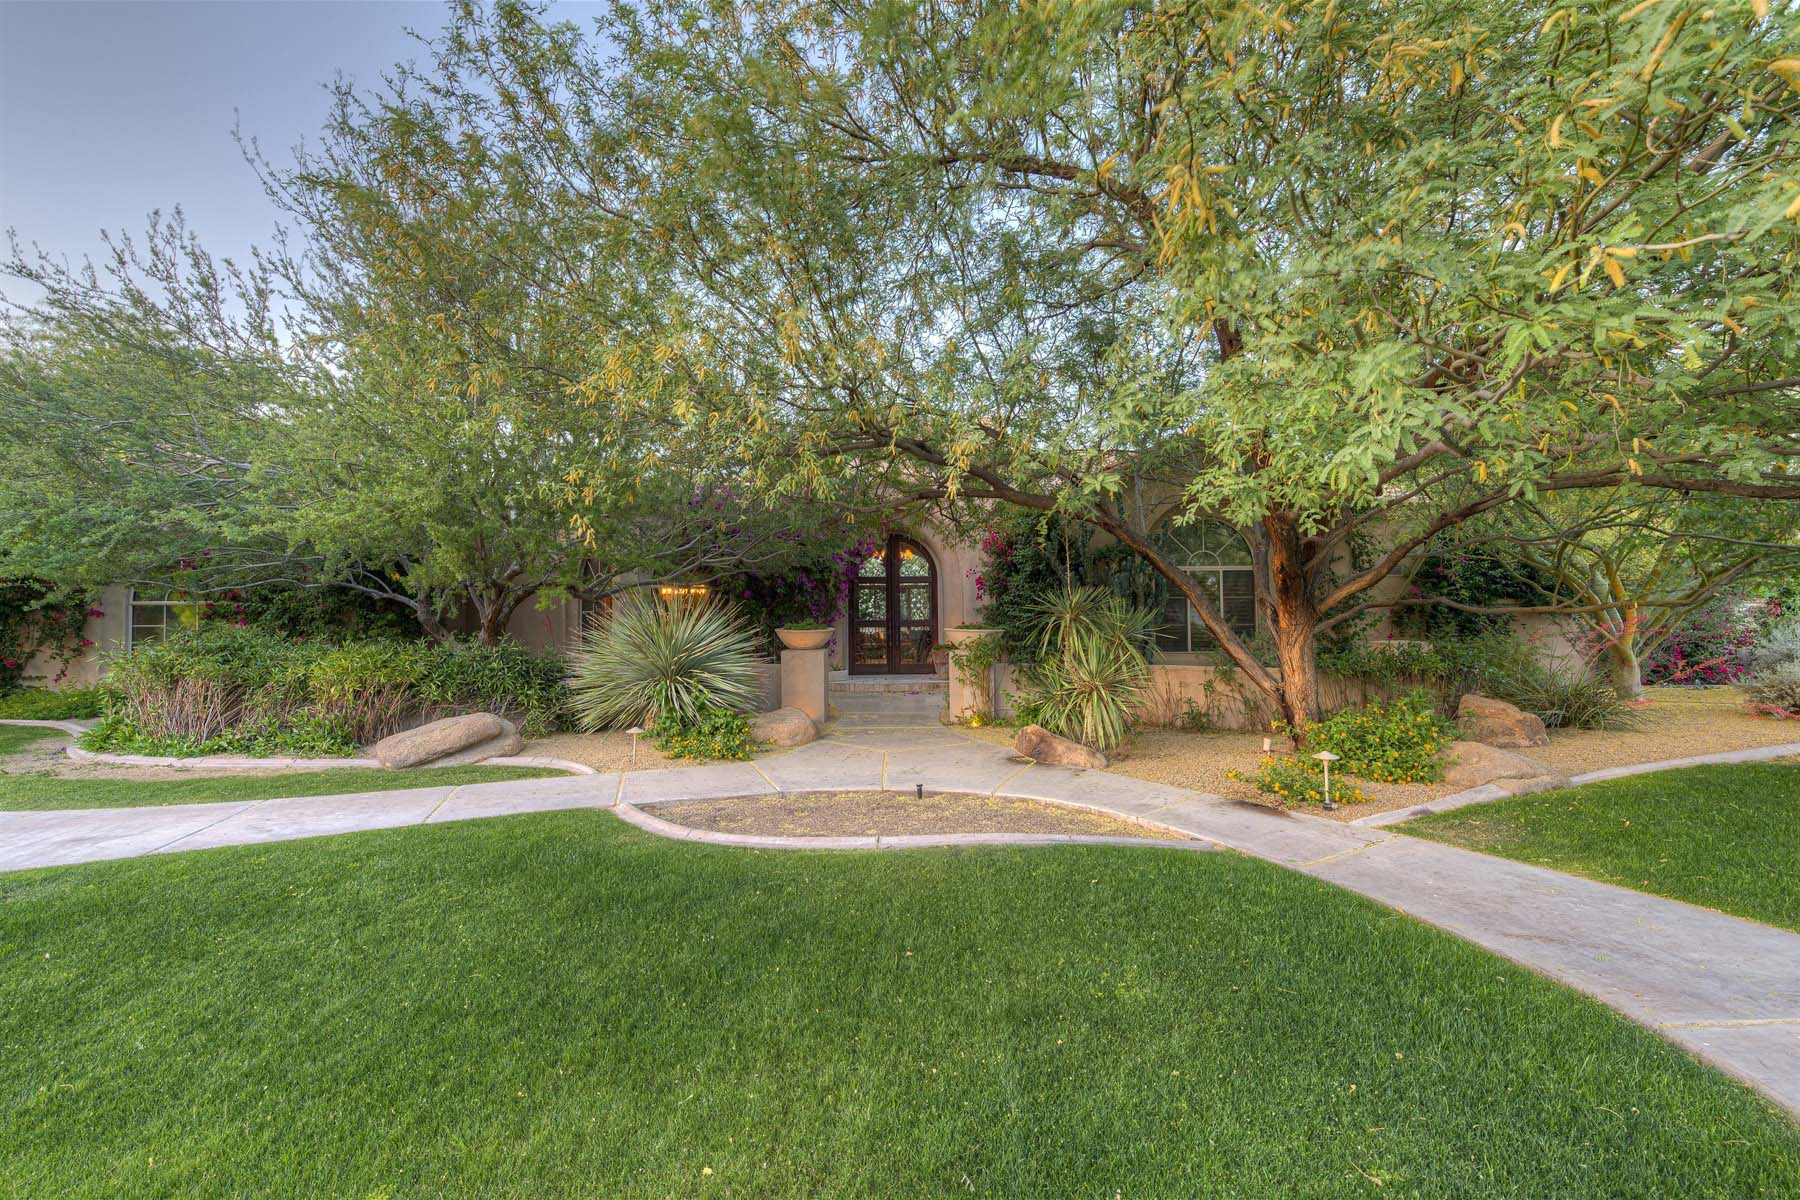 Single Family Home for Sale at Exceptional Home in Cheney Estates. 7130 E BELMONT AVE Paradise Valley, Arizona 85253 United States